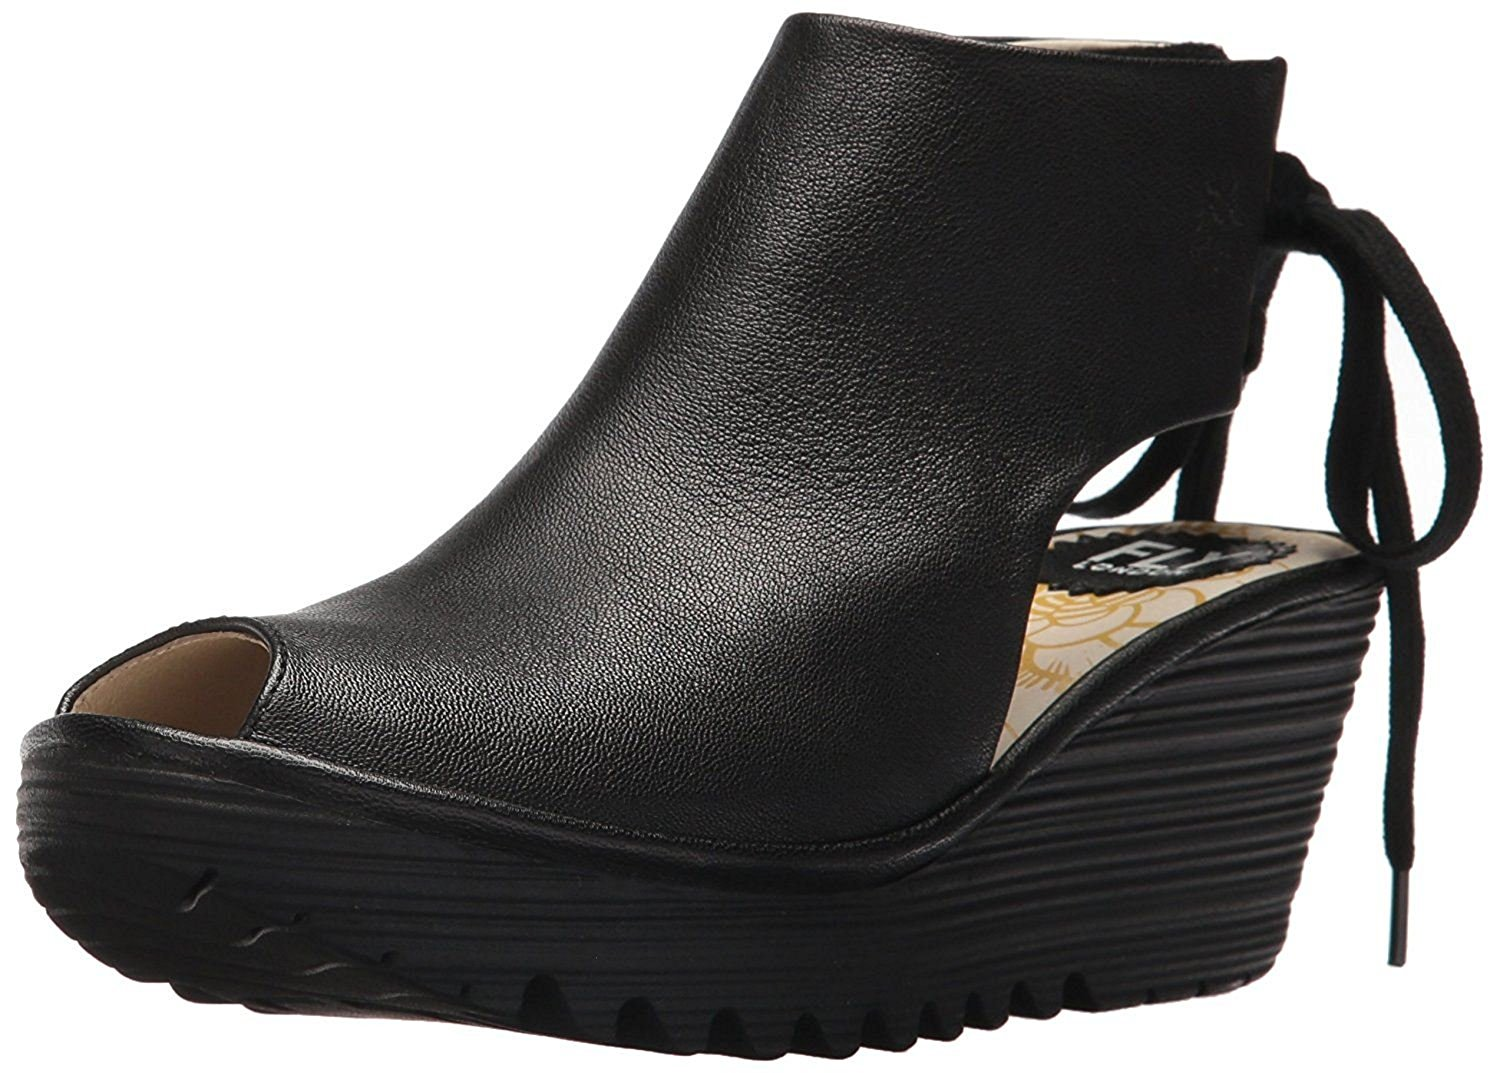 52693fd8c28 Get Quotations ·  Fly London Yuzu800fly Black Womens Leather Wedge Sandals  Shoes